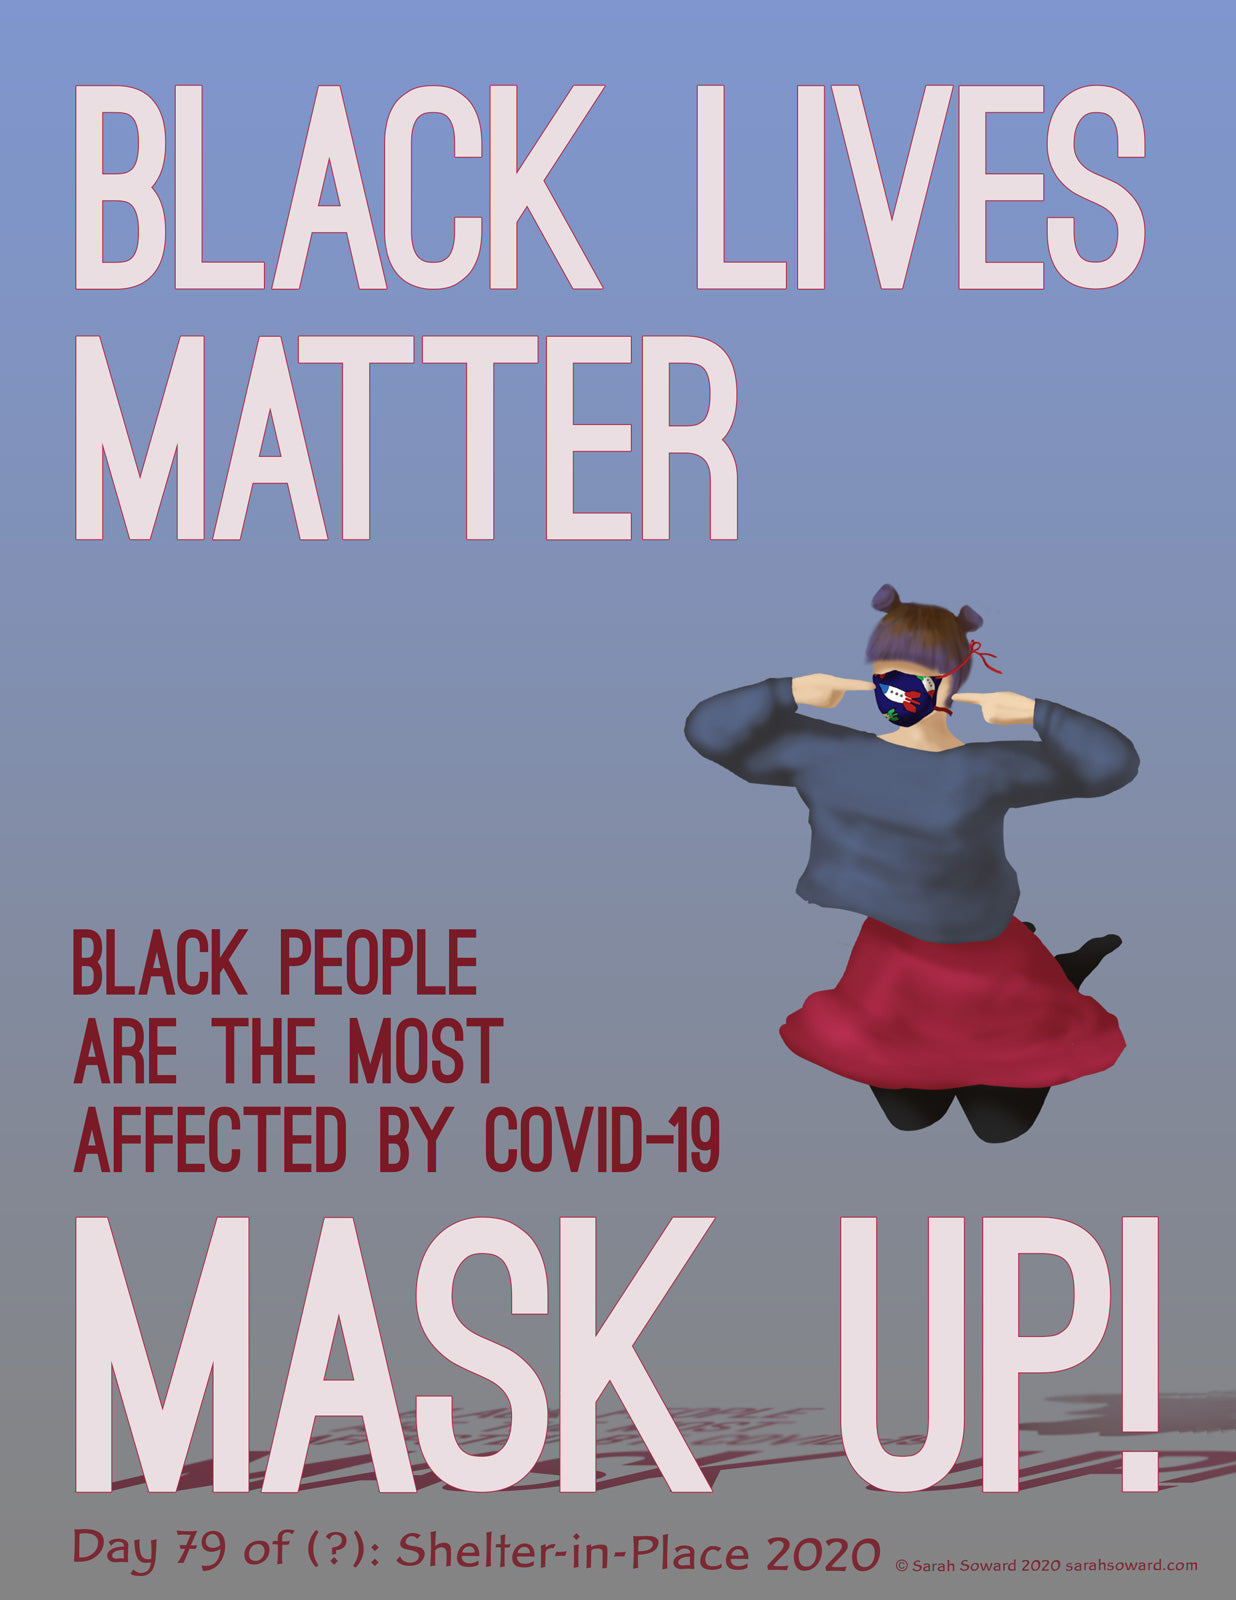 The image reads, Black Lives Matter, Black People are the Most Affected by COVID-19, Mask UP! A woman is jumping into the air in a cute pink skirt and blue-grey sweater while pointing at her rocket-ship-print mask.